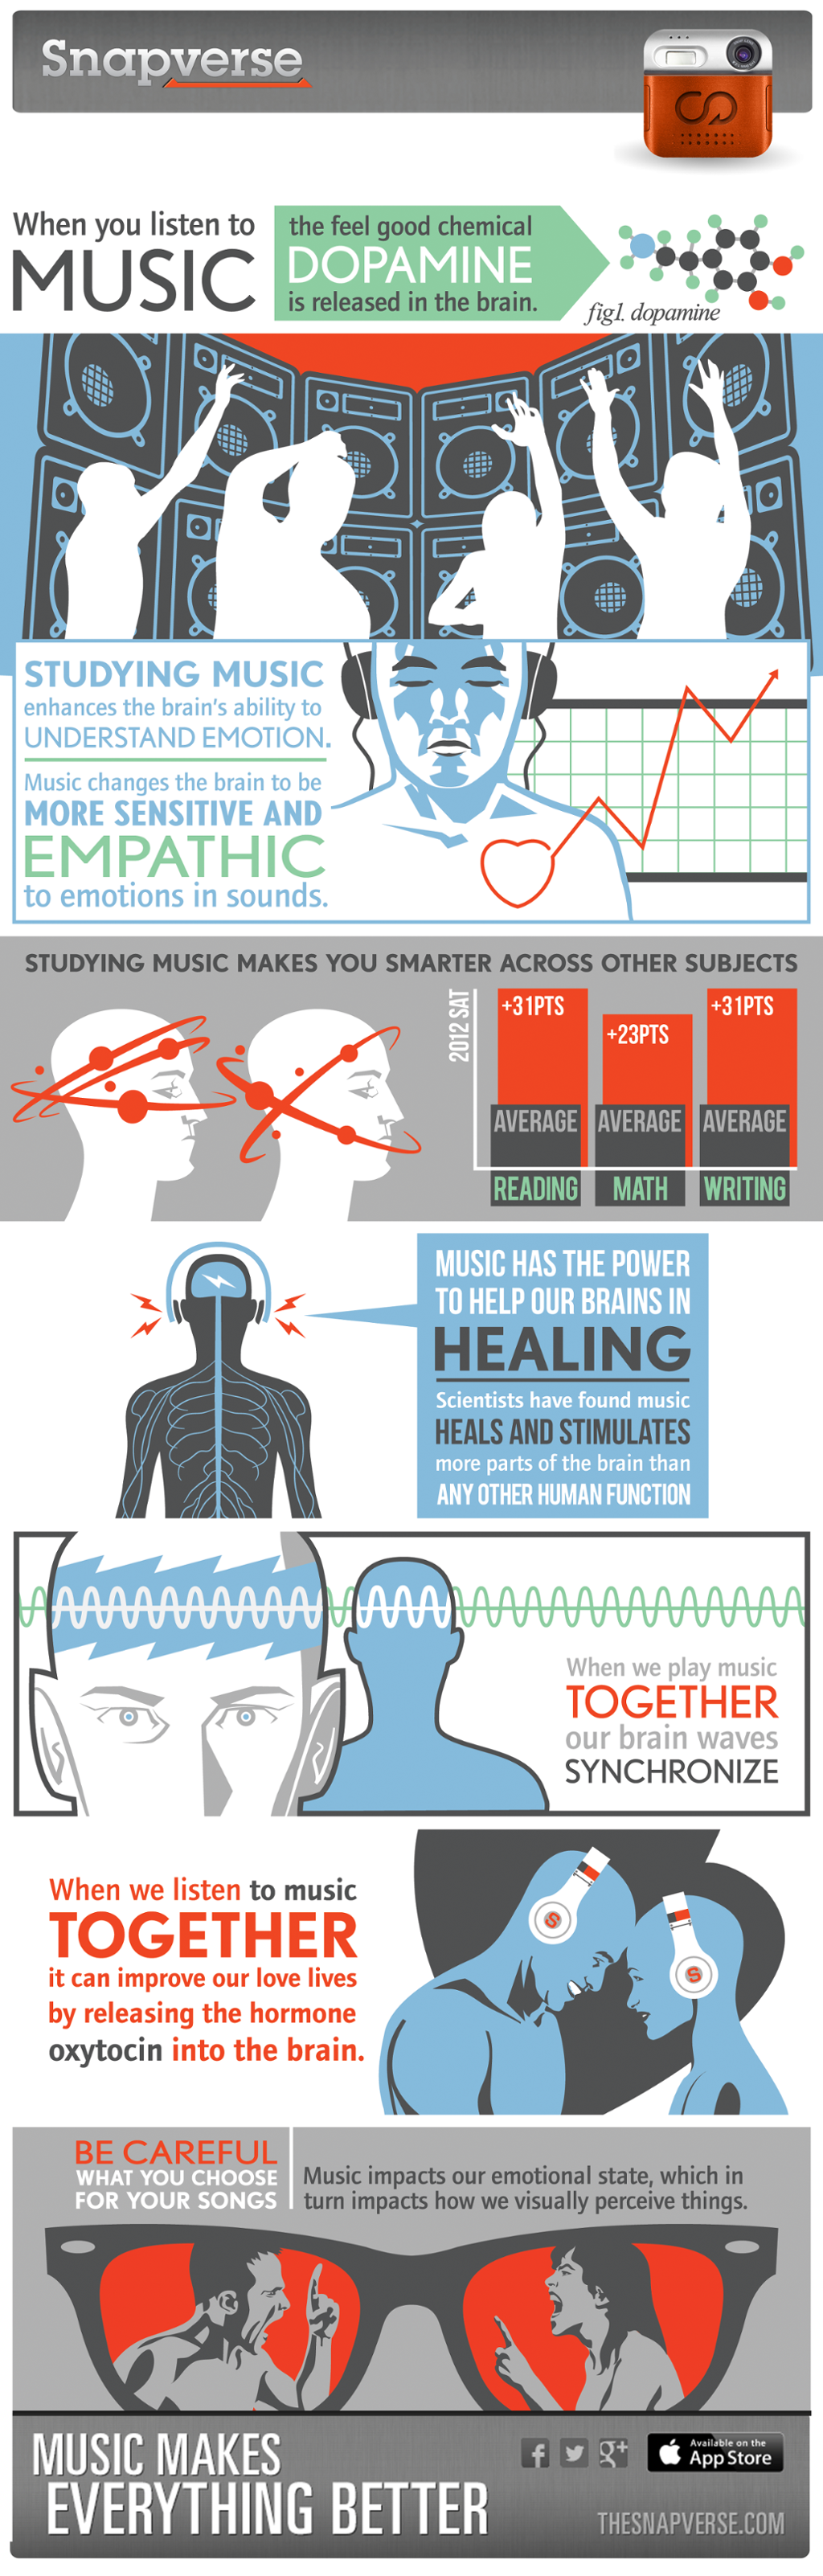 This Is Your Brain On Music Infographic - Snapverse